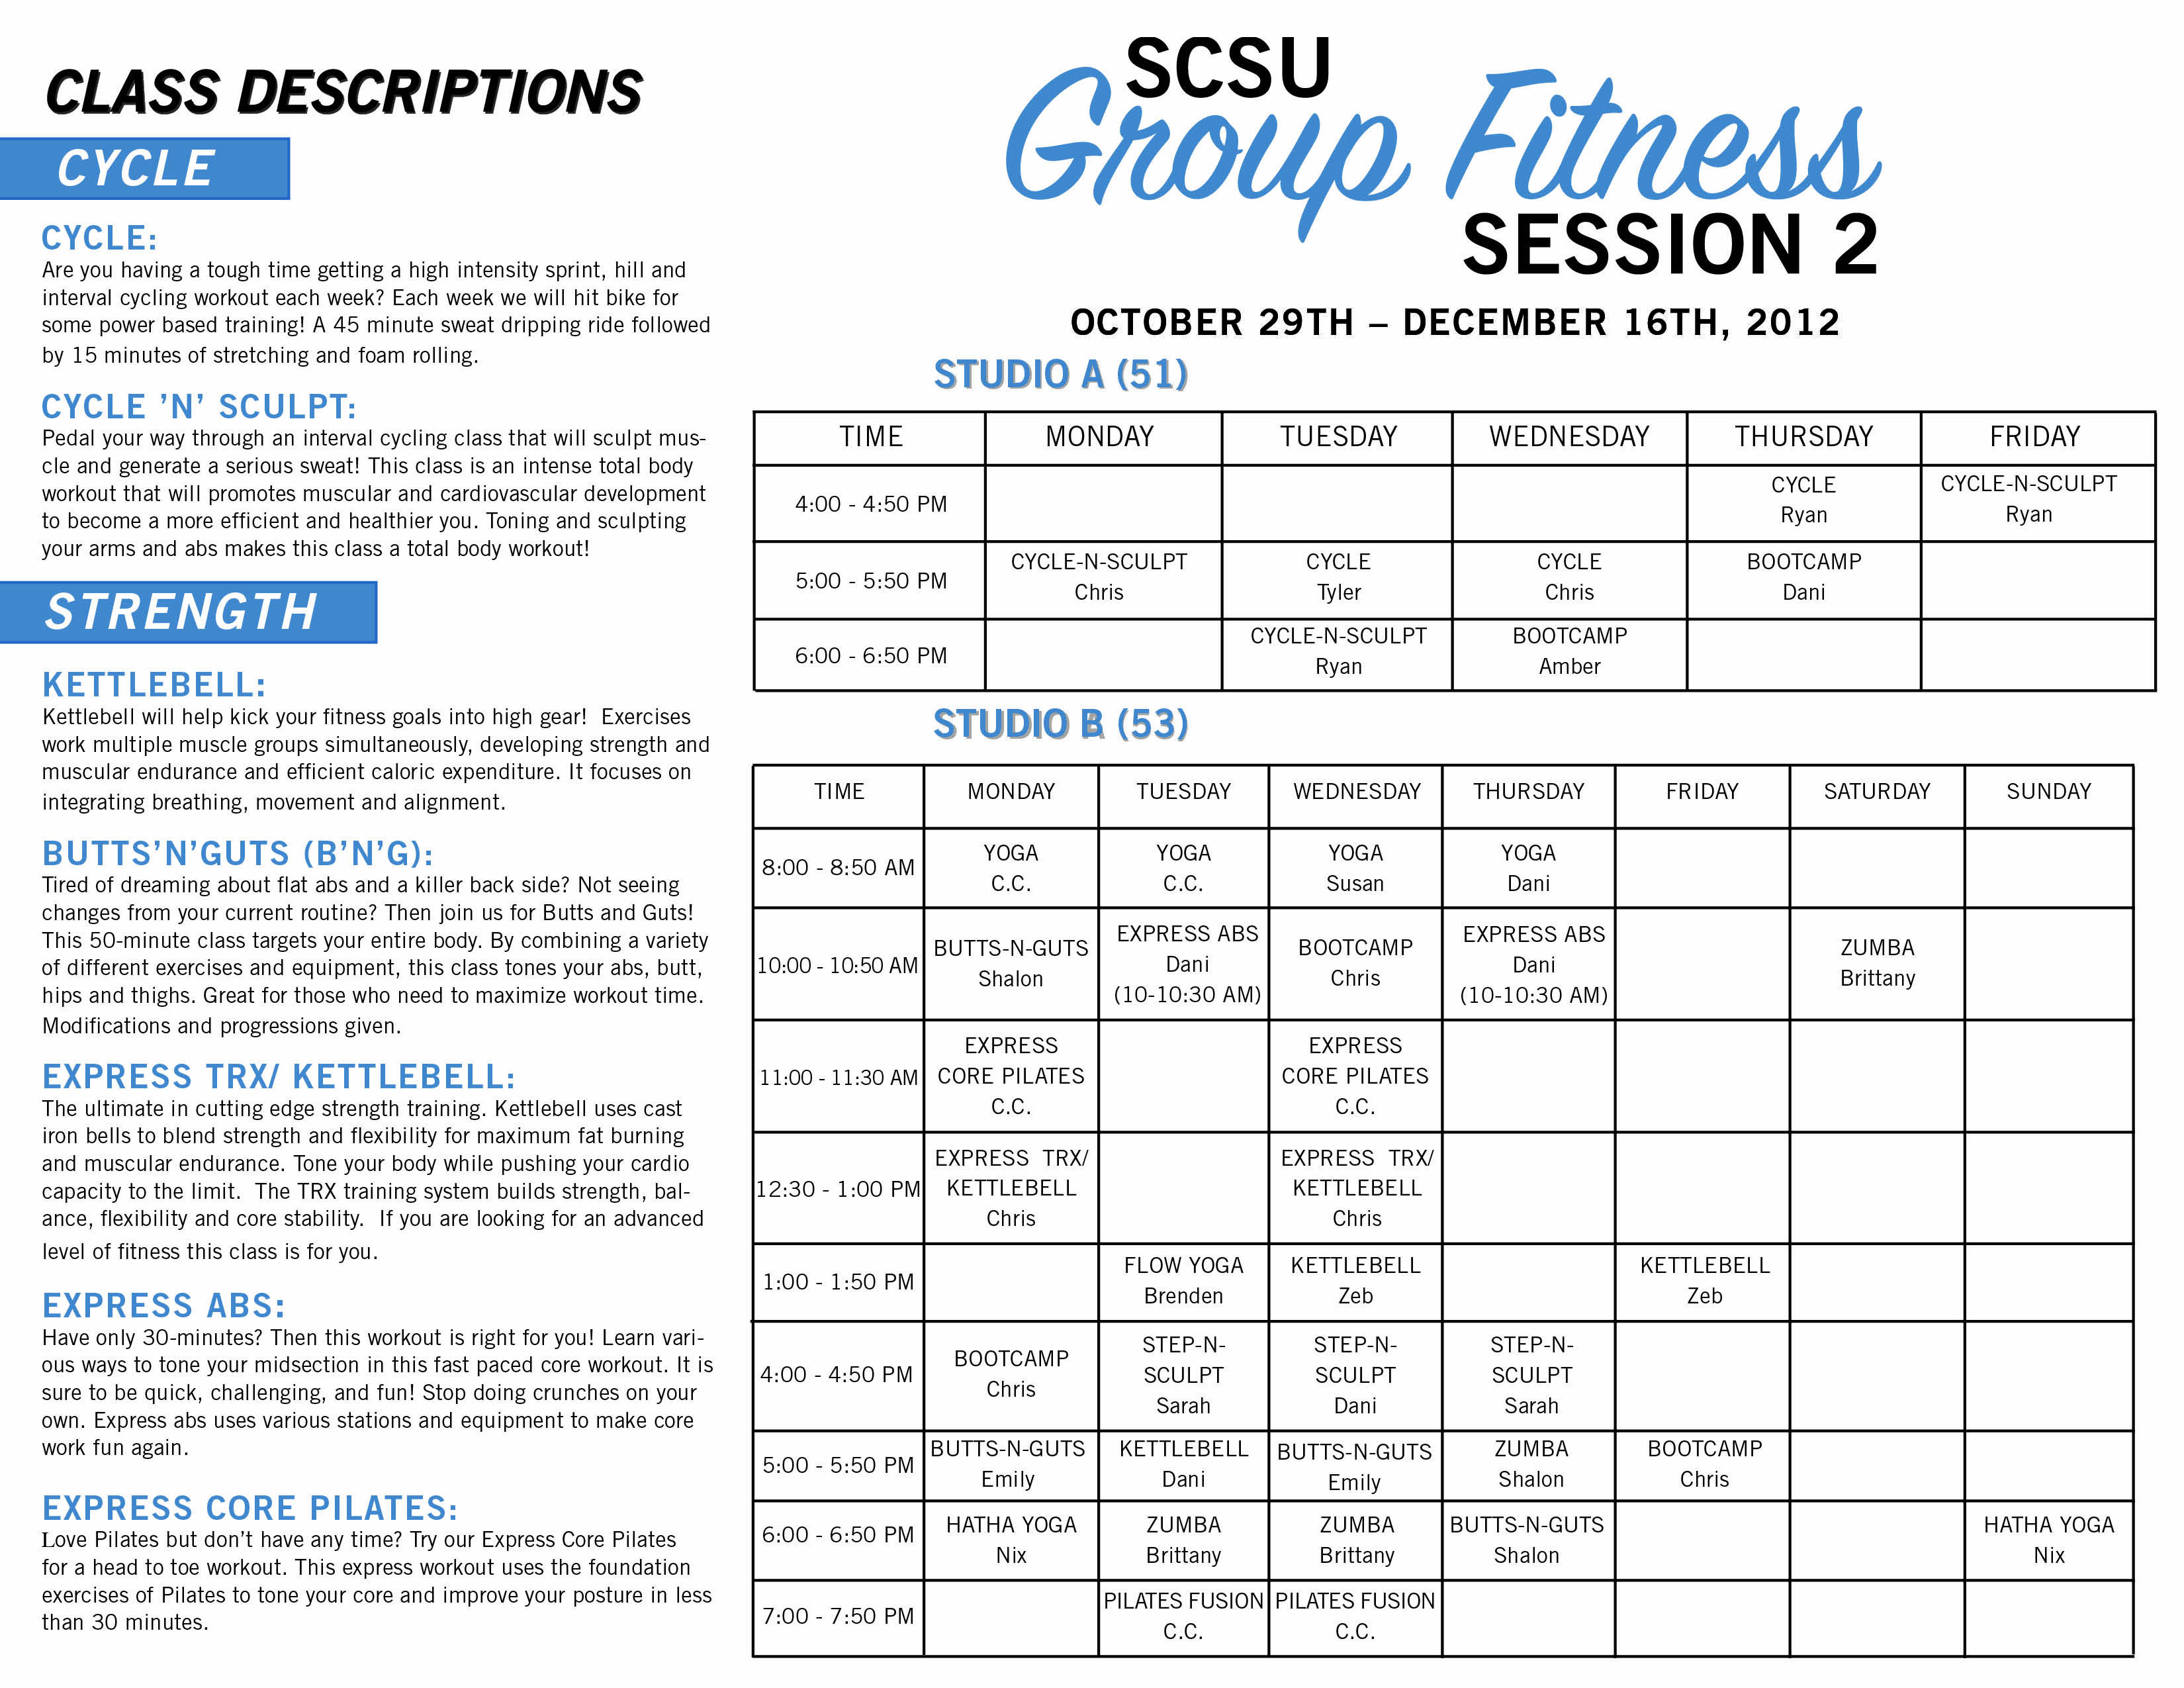 group fitness class schedule and descriptions | programs/events